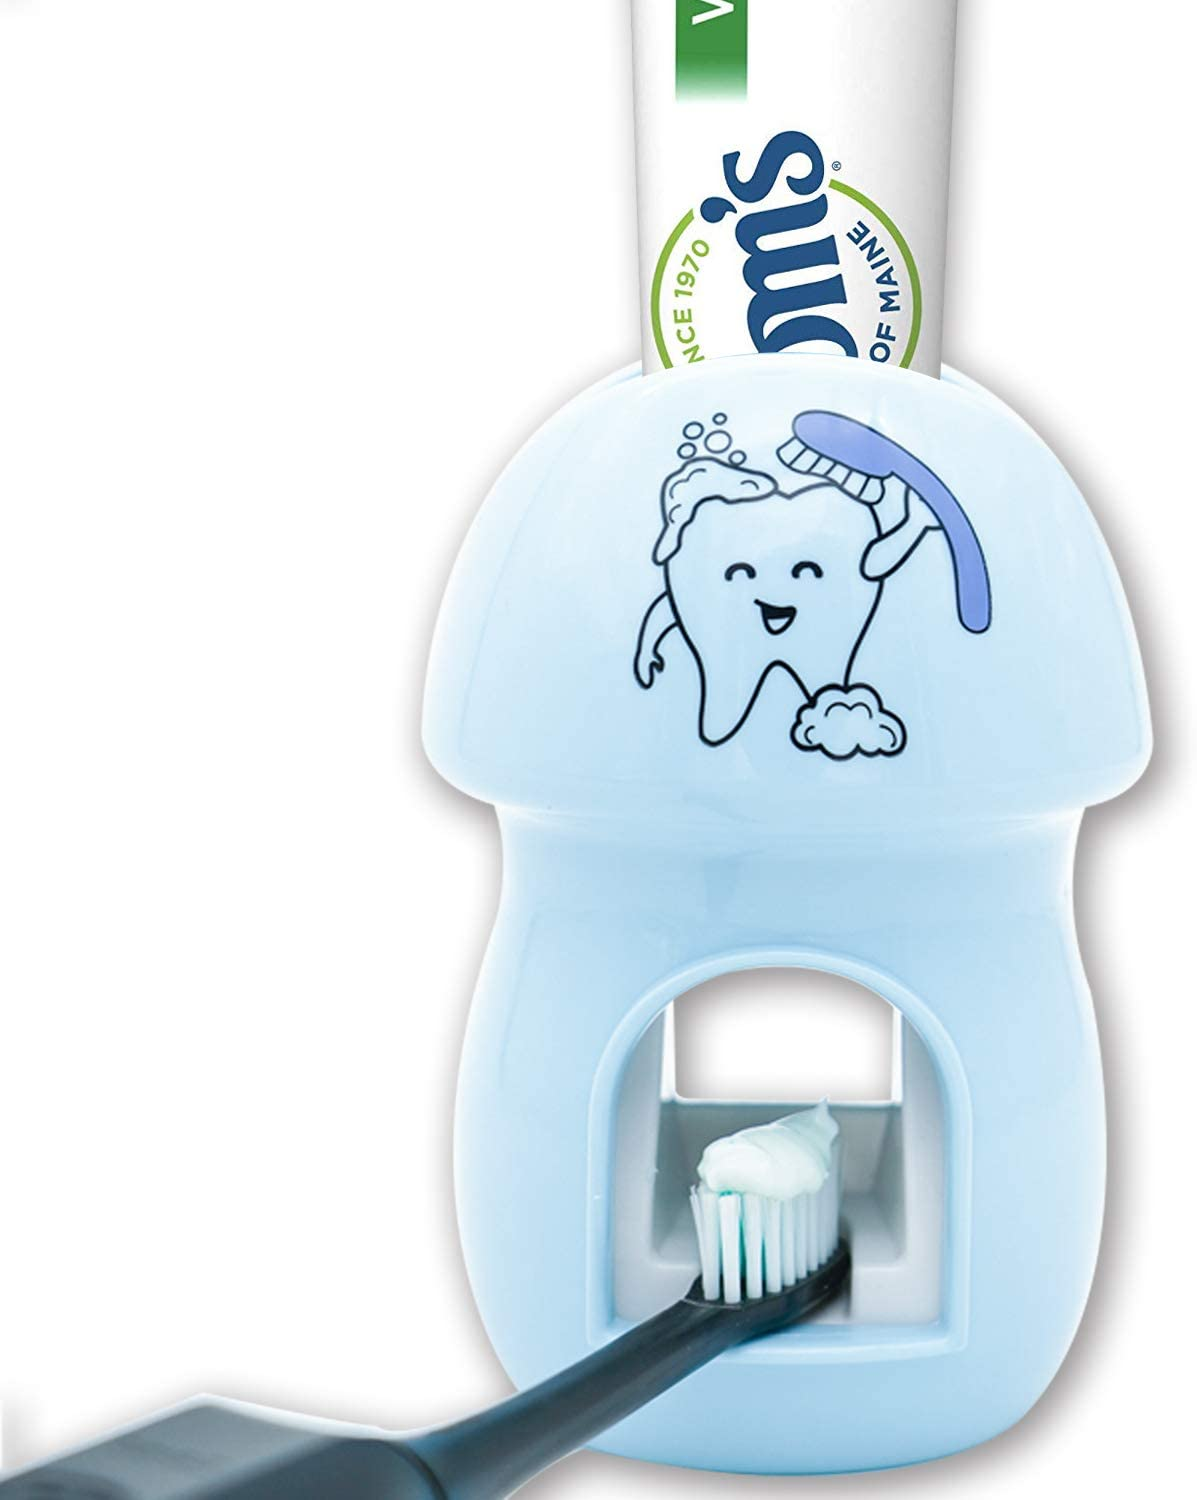 BZ Toothbrush Holder Automatic Toothpaste Dispenser Set Kids Hands Free Toothpaste Squeezer for Family Washroom